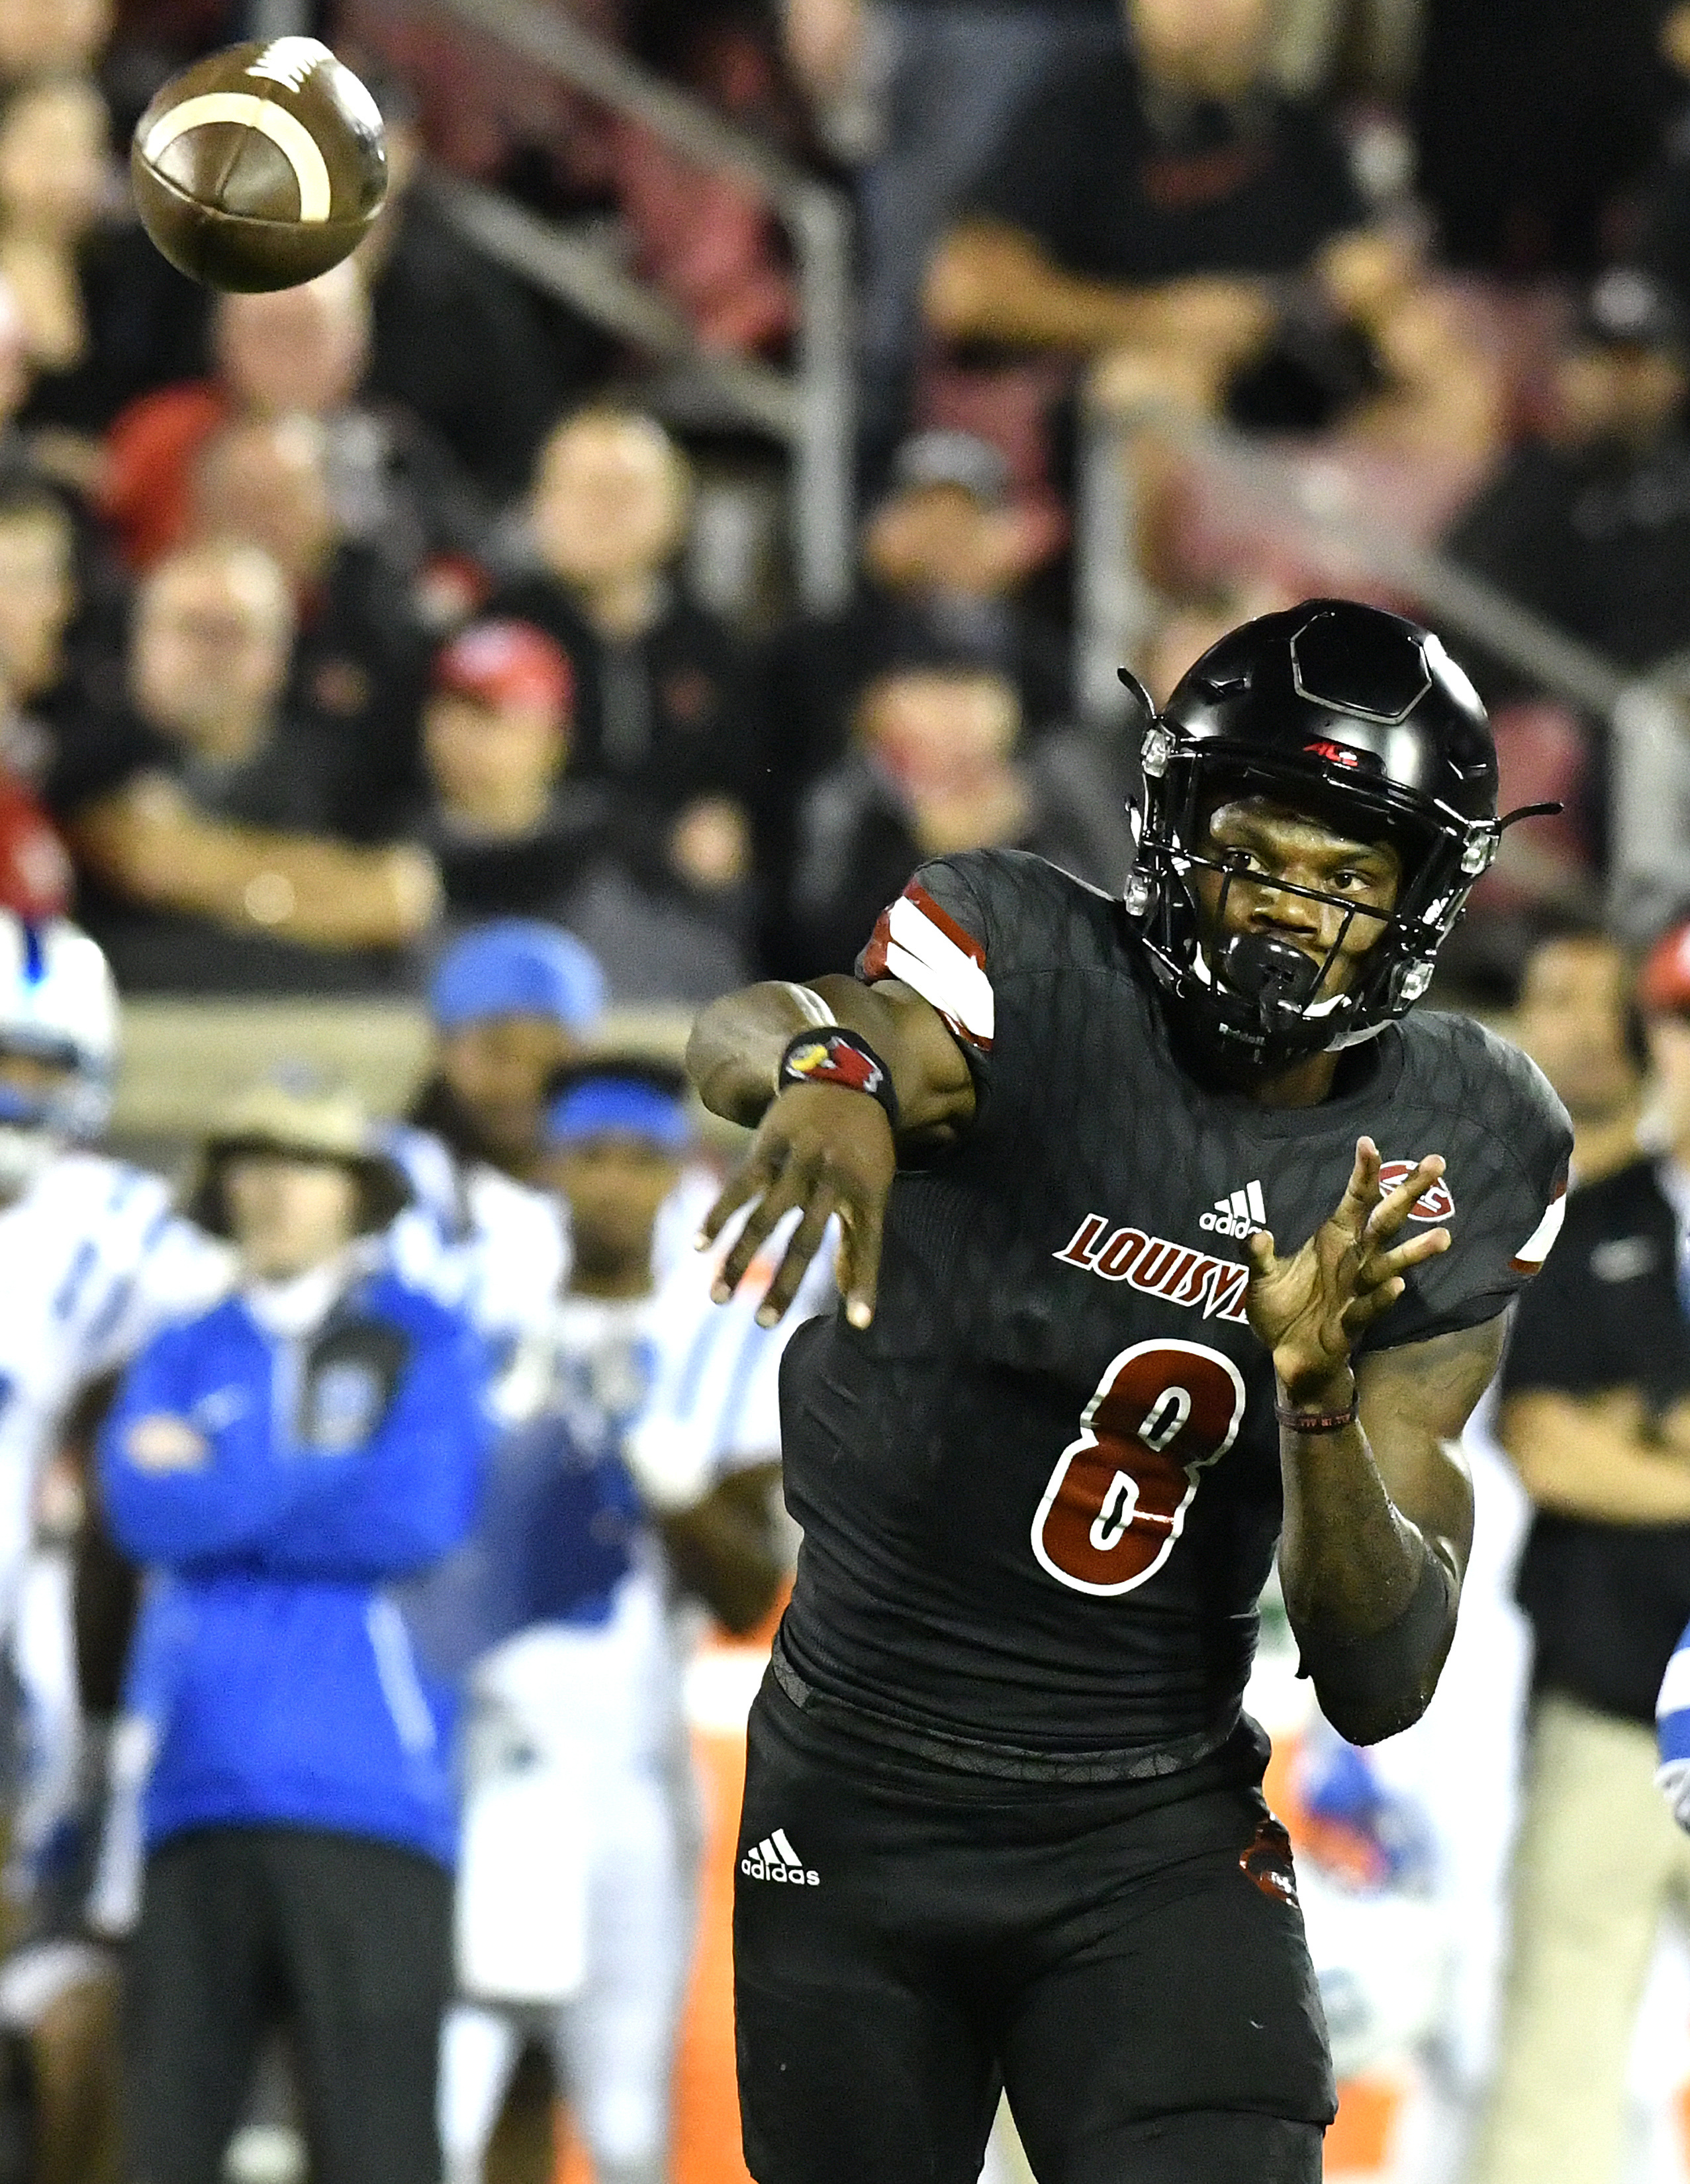 Louisville quarterback Lamar Jackson (8) attempts a pass against the Duke defense during the second half of an NCAA college football game, Friday, Oct. 14, 2016, in Louisville, Ky. (AP Photo/Timothy D. Easley)